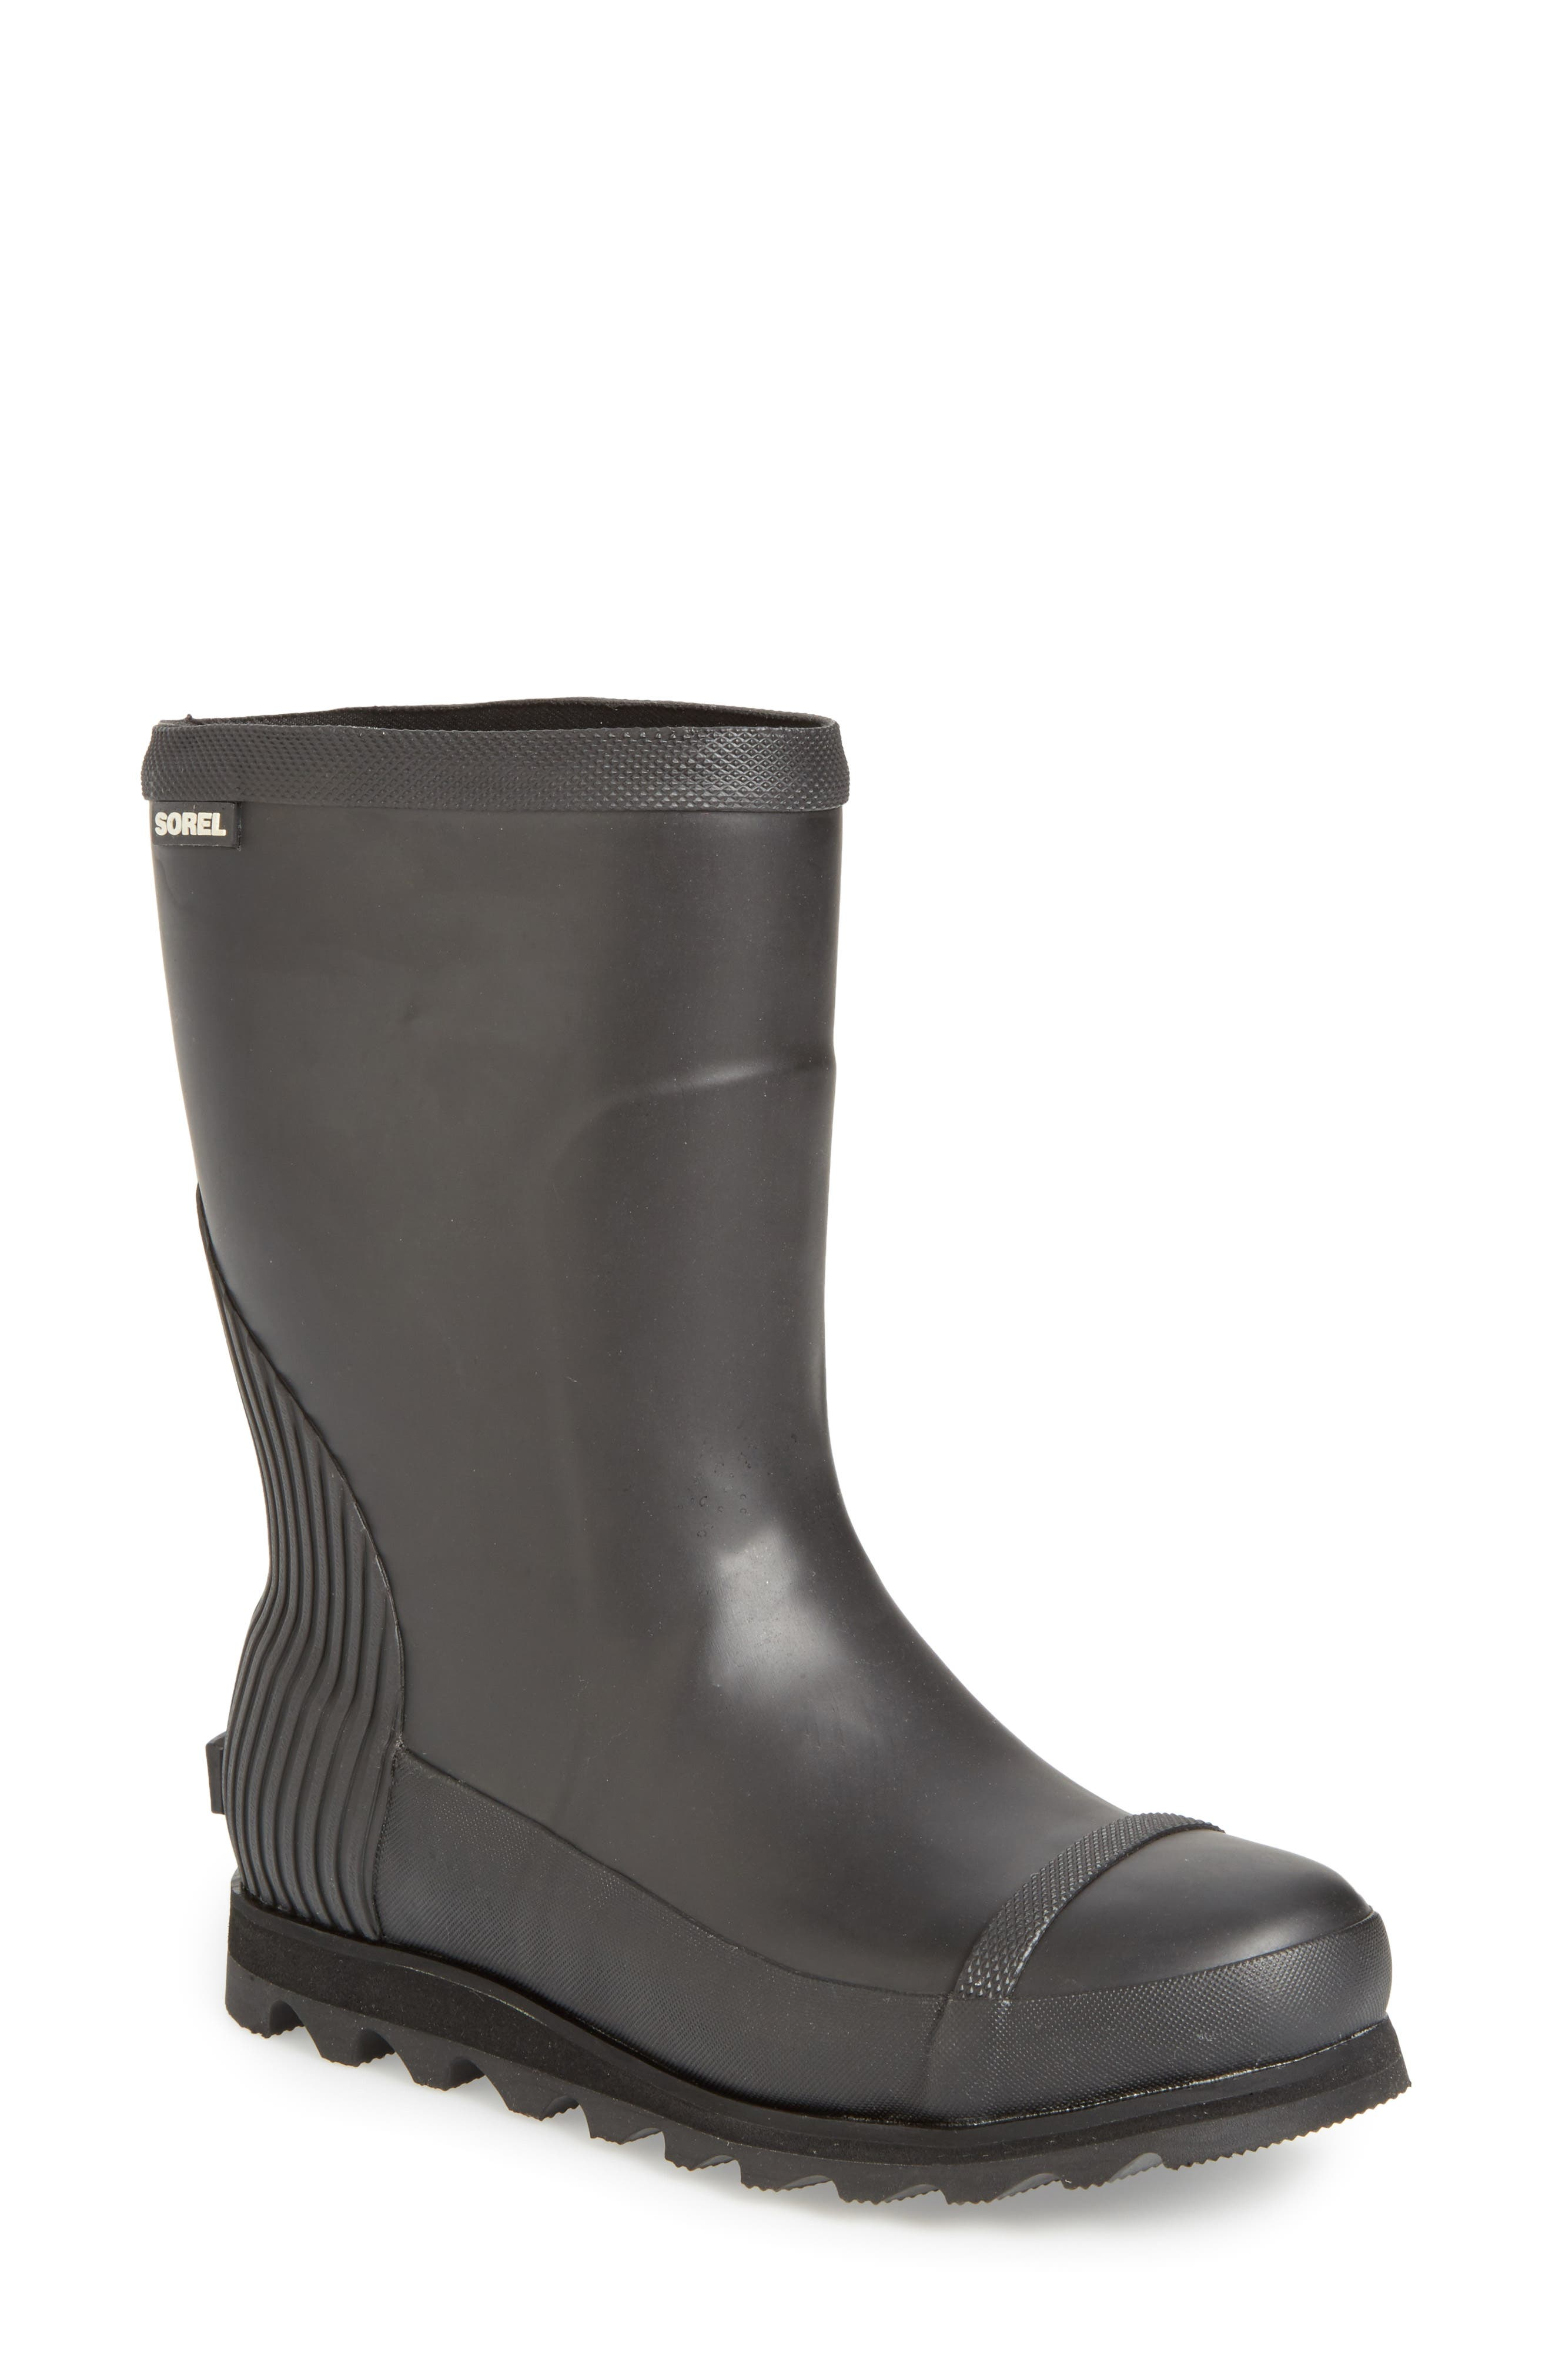 Joan Short Rain Boot,                         Main,                         color, Black/ Sea Salt